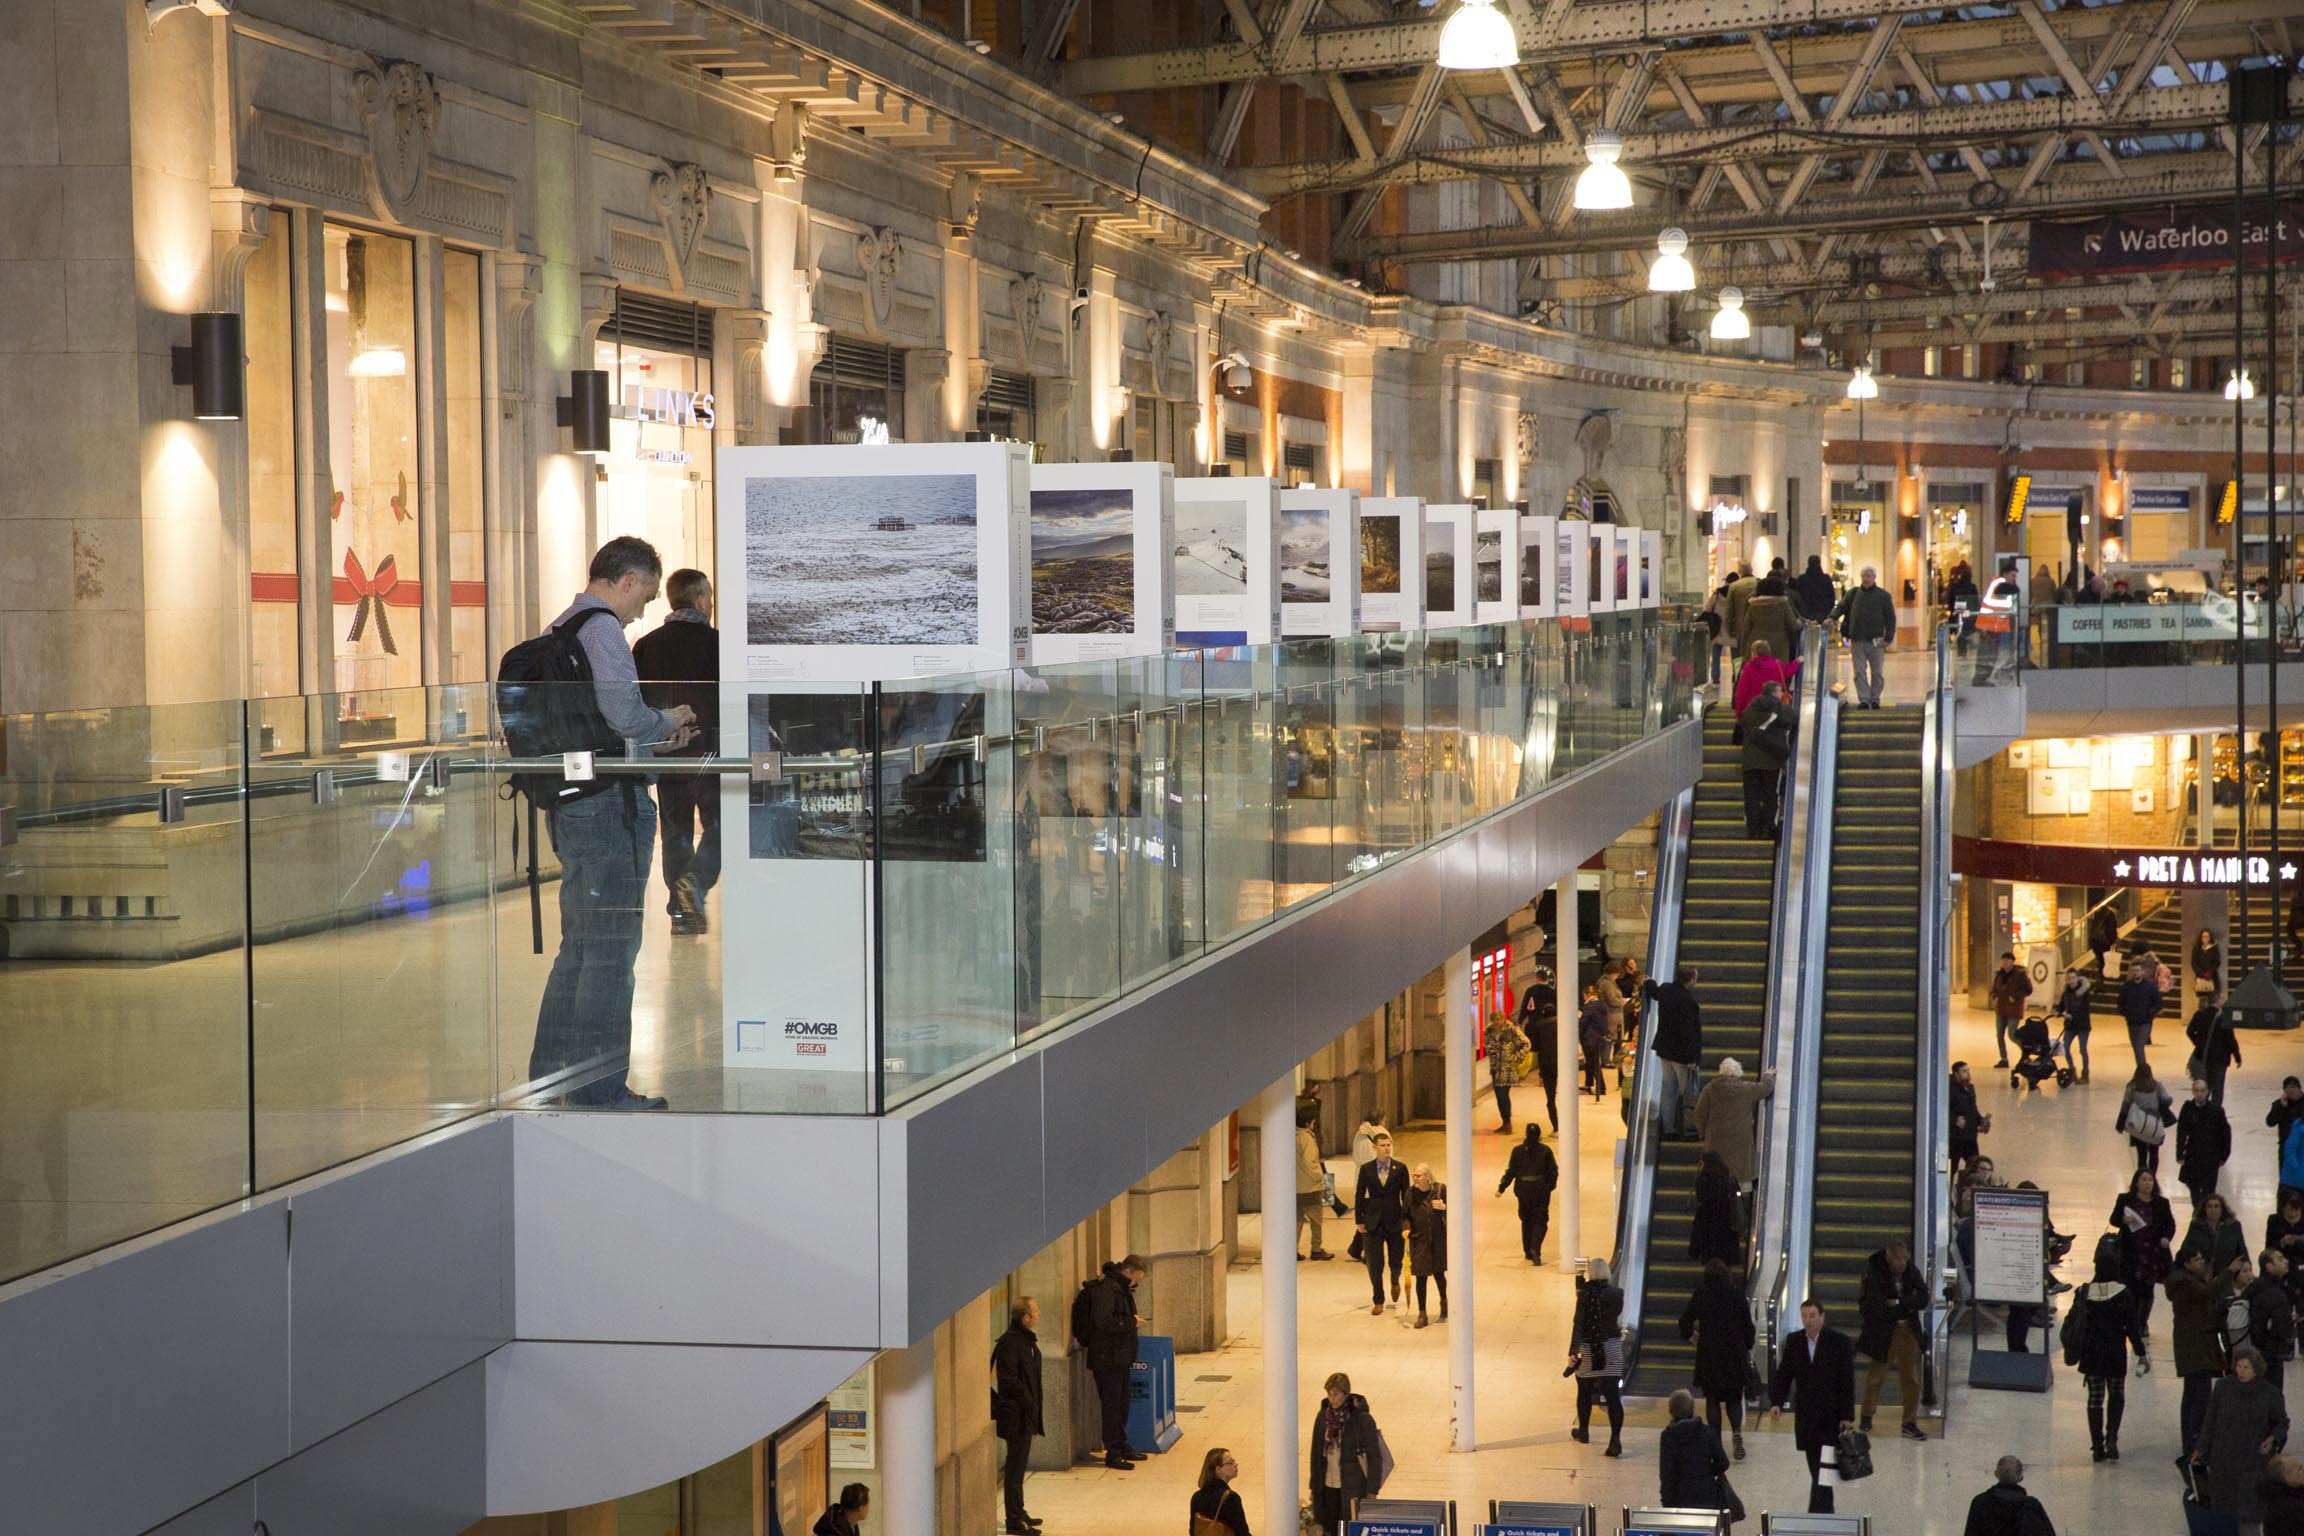 Landscape Photographer of the Year exhibition in Waterloo Station.